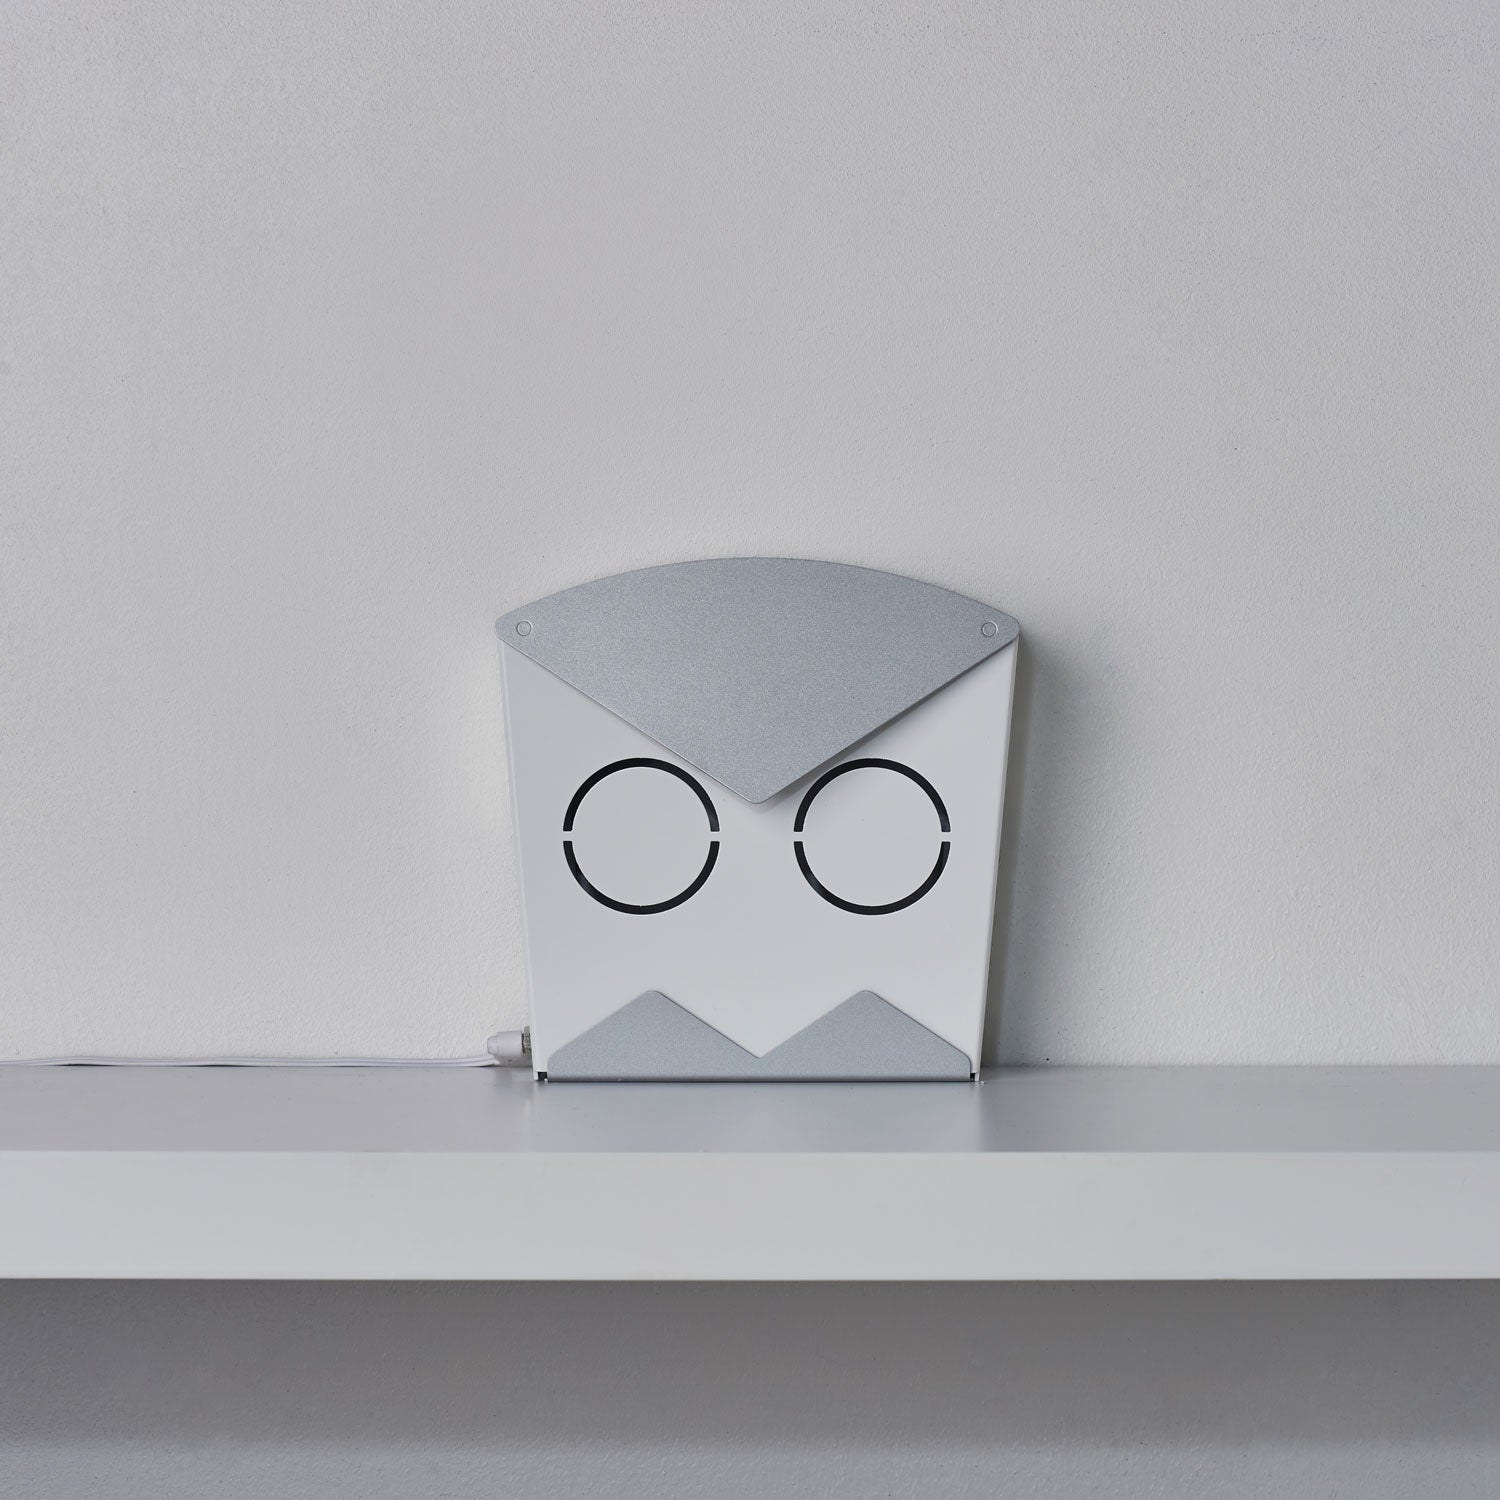 Led Light Fixture Keeps Going Out: Owl In Silver- An Elegant Aluminum Wall LED Light Fixture